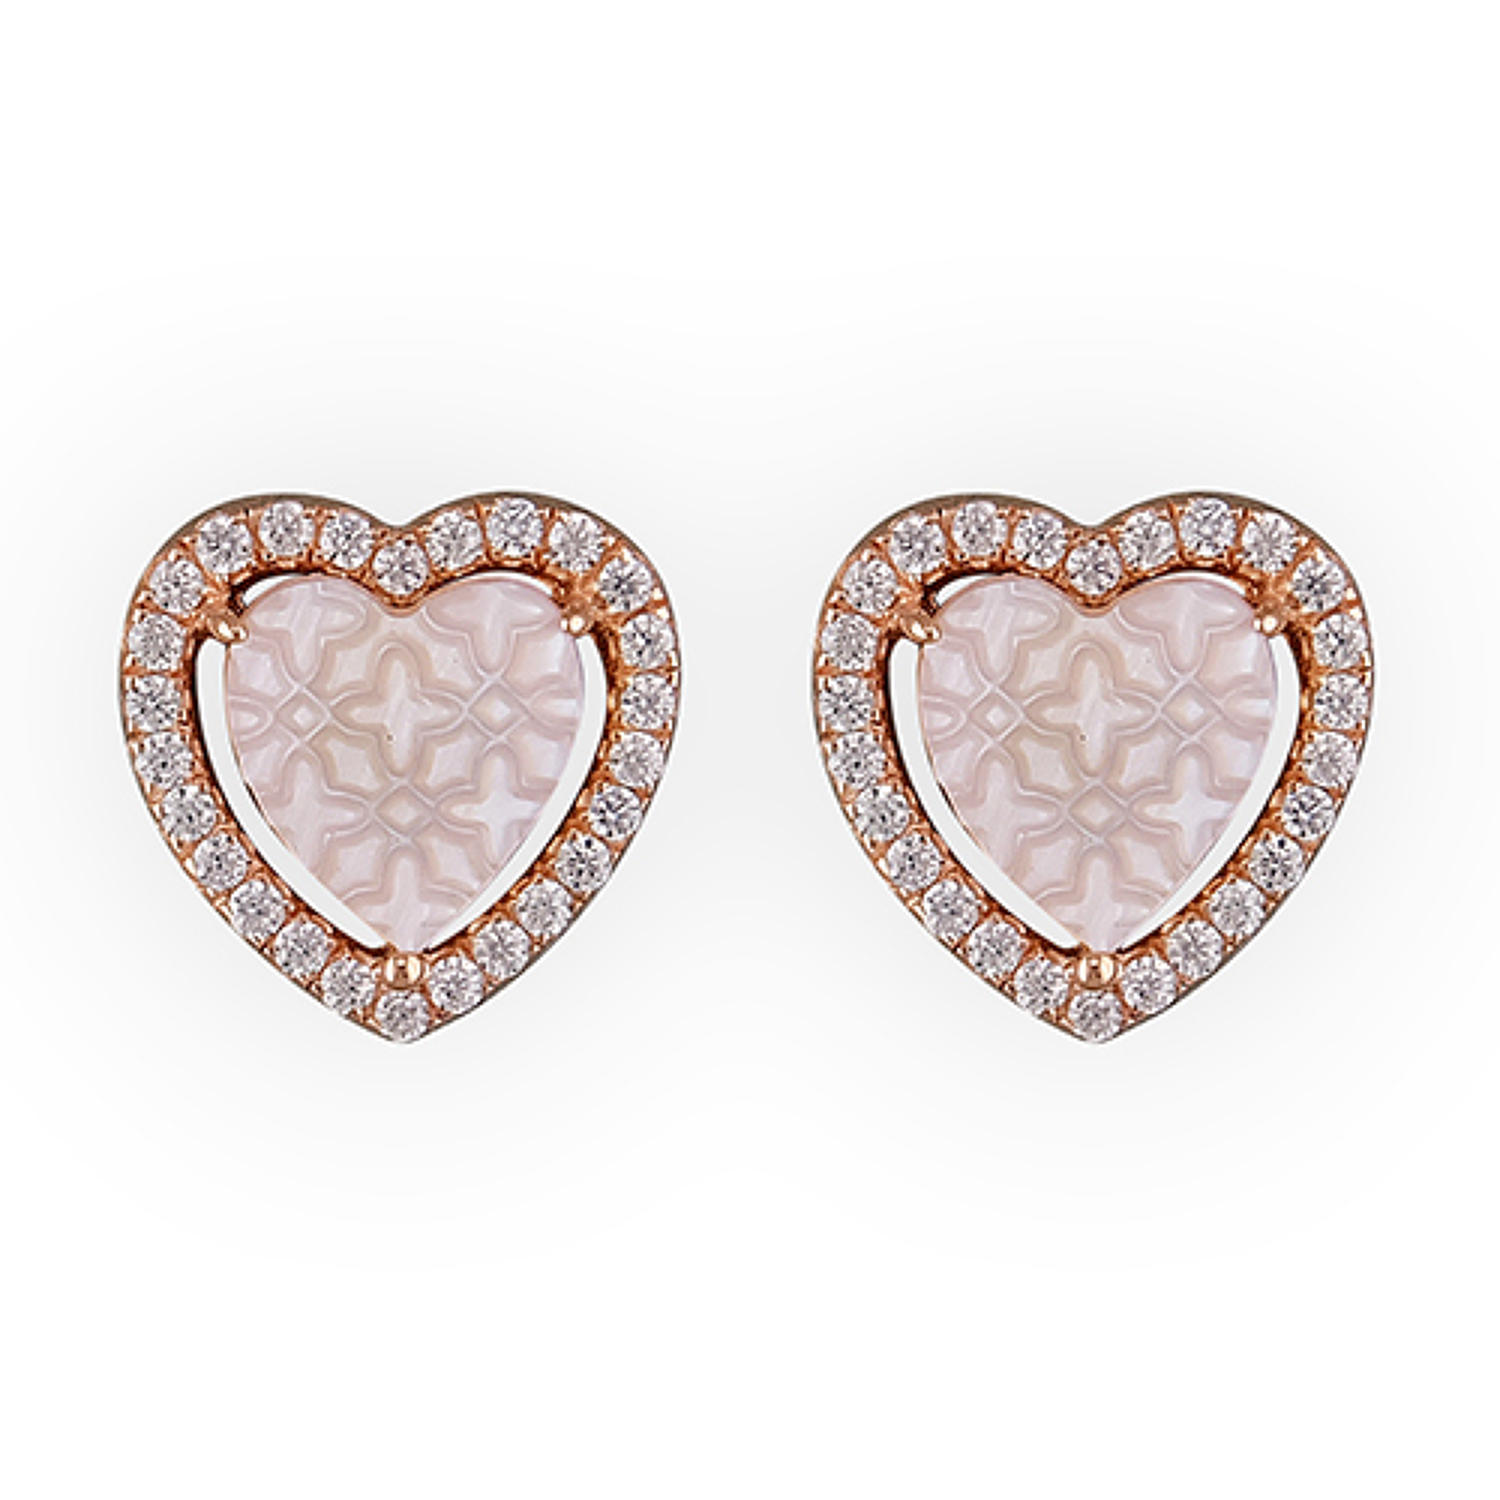 Sterling Silver & Rose Gold Plated Mother Of Pearl Heart Stud Earrings